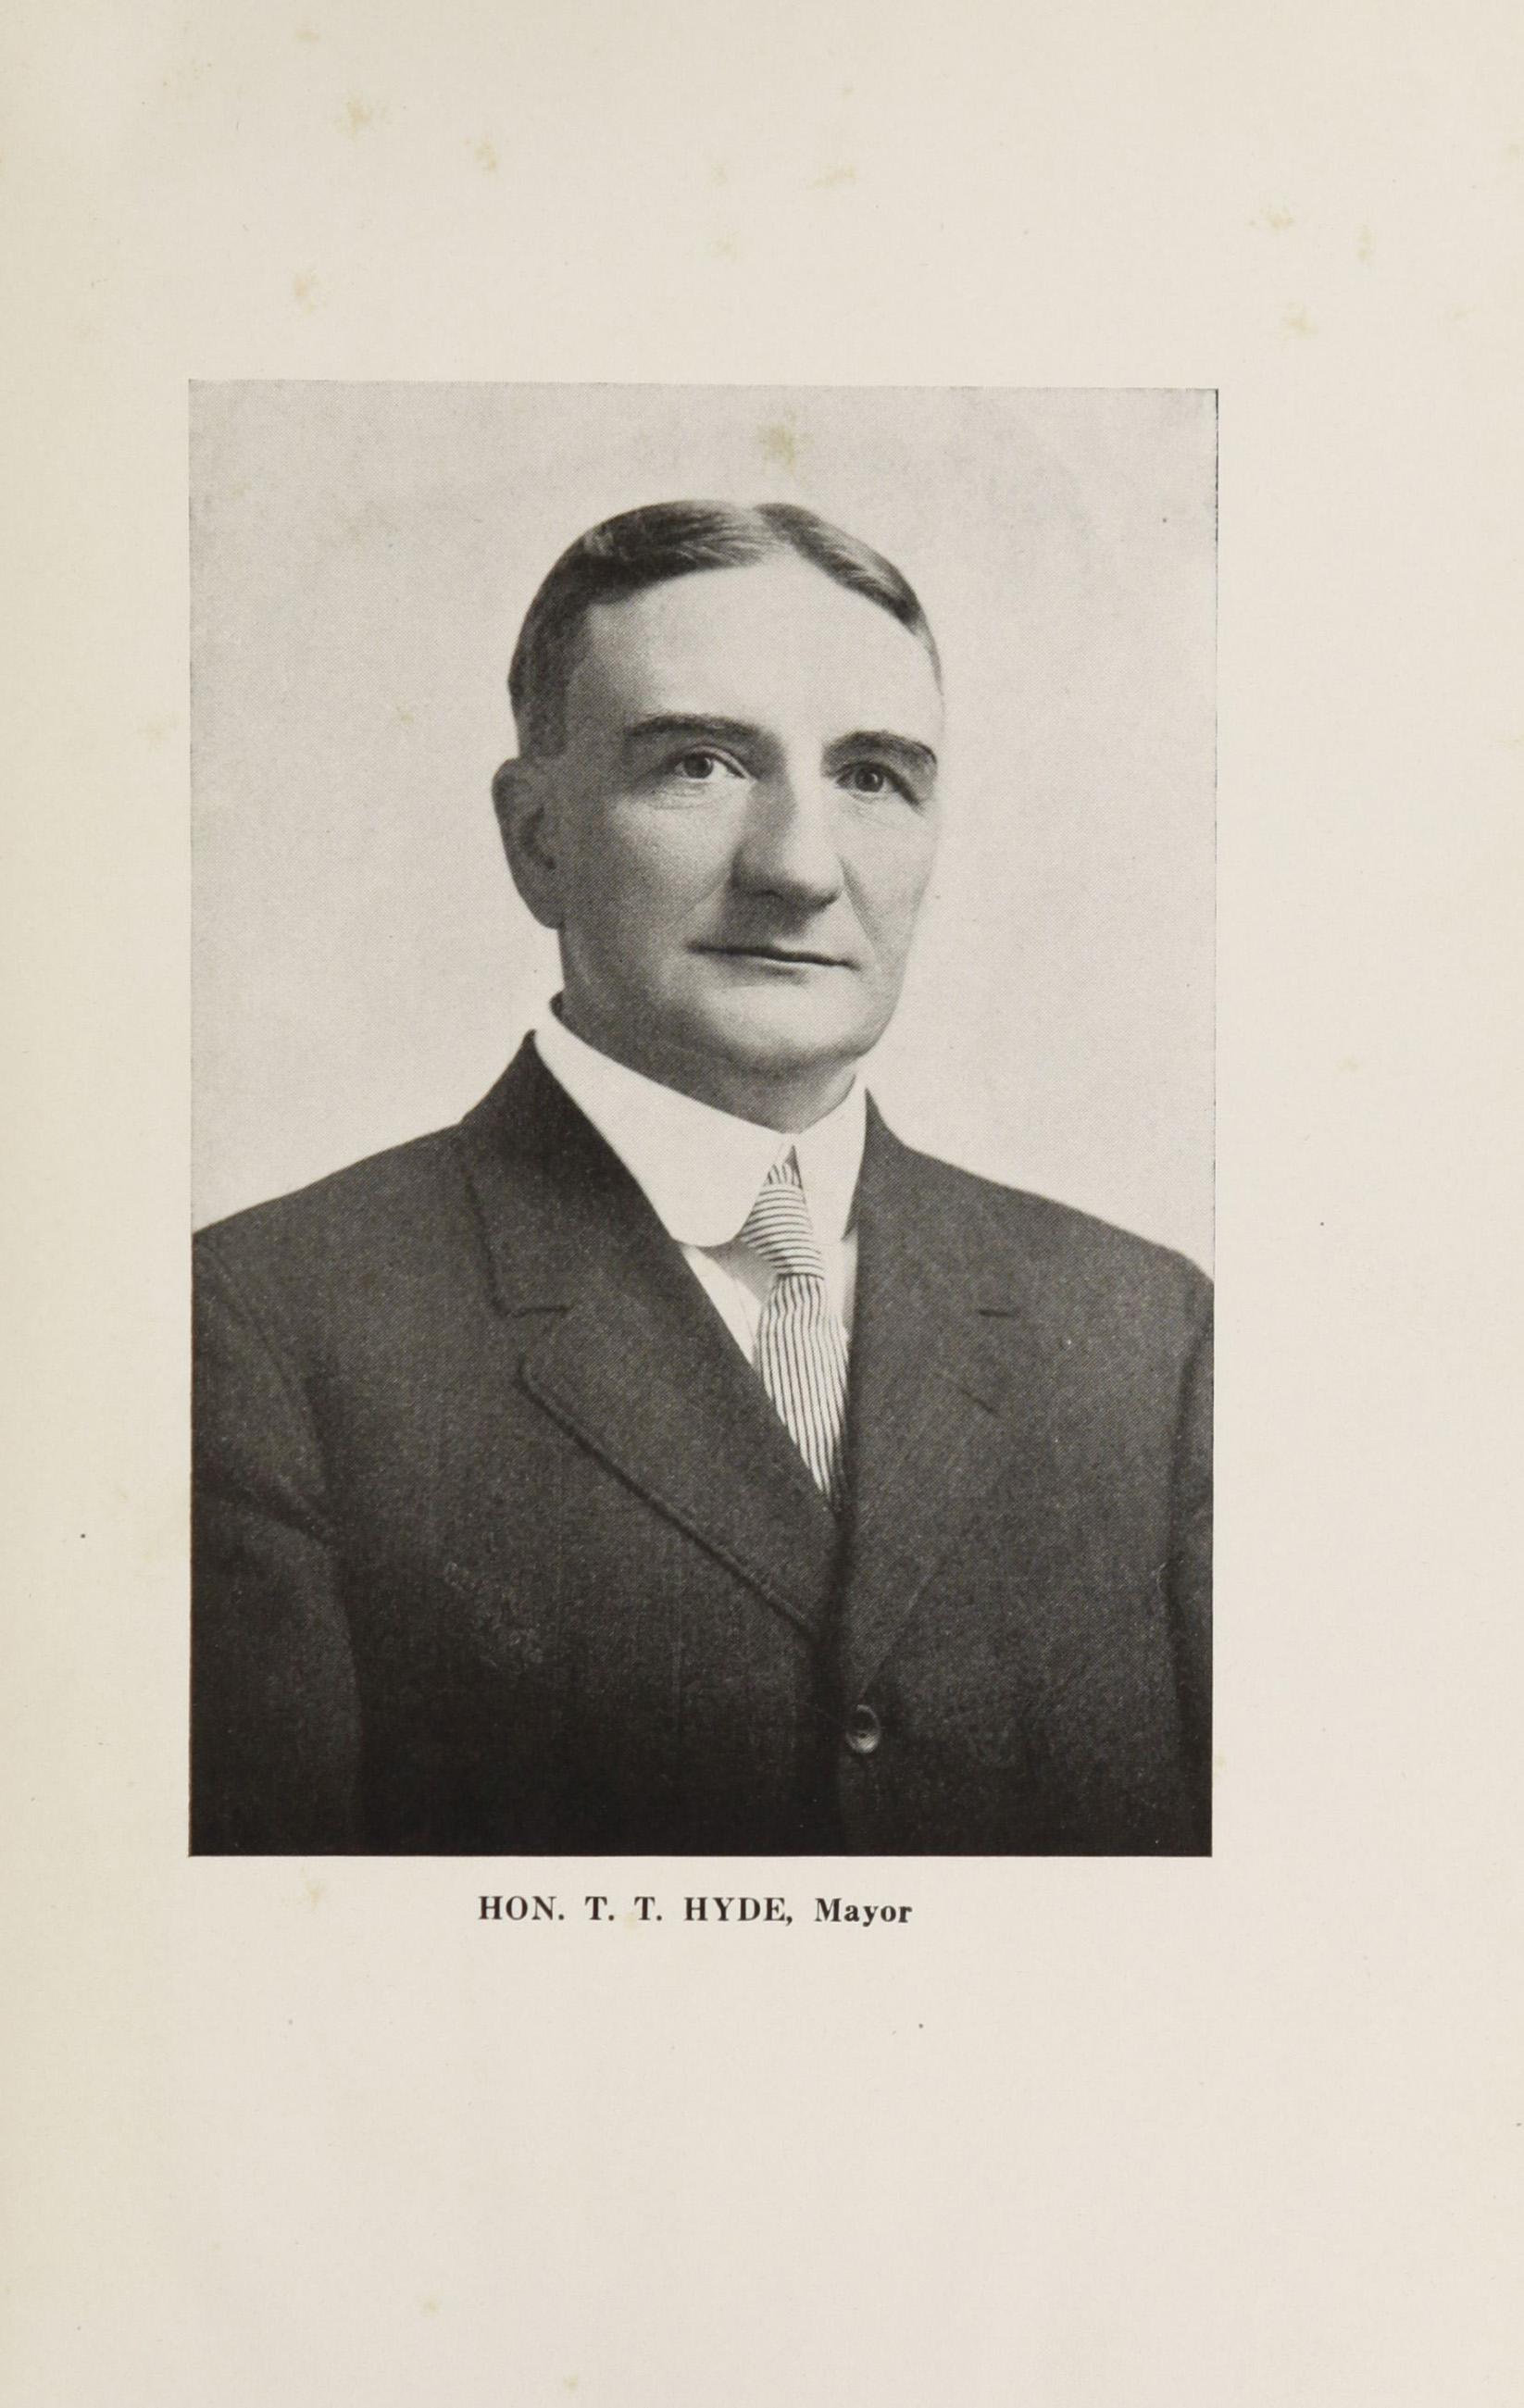 Charleston Yearbook, 1916, photograph